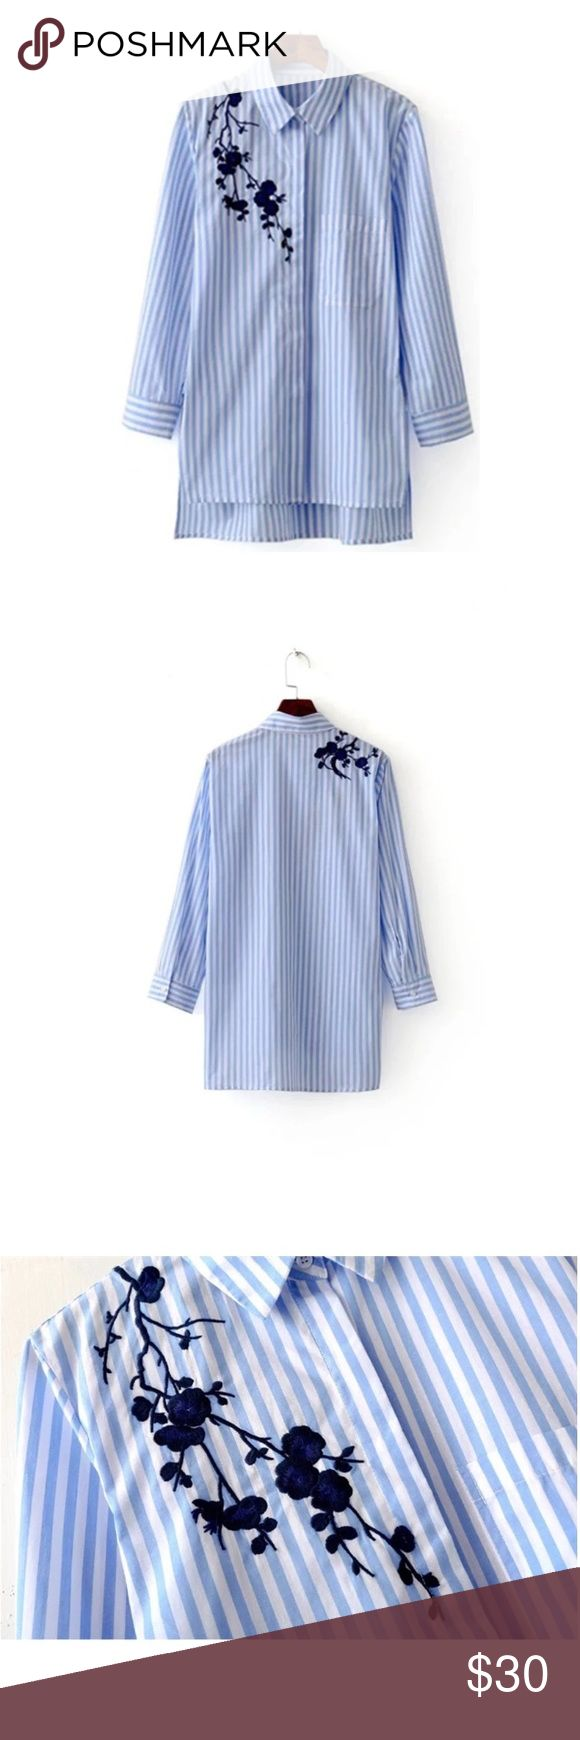 Embroidered Blouse CottonStripe Long Sleeve Shirt Women Embroidered Blouses Cotton Blue Striped Long Sleeve Shirt Turn-down Collar Tops